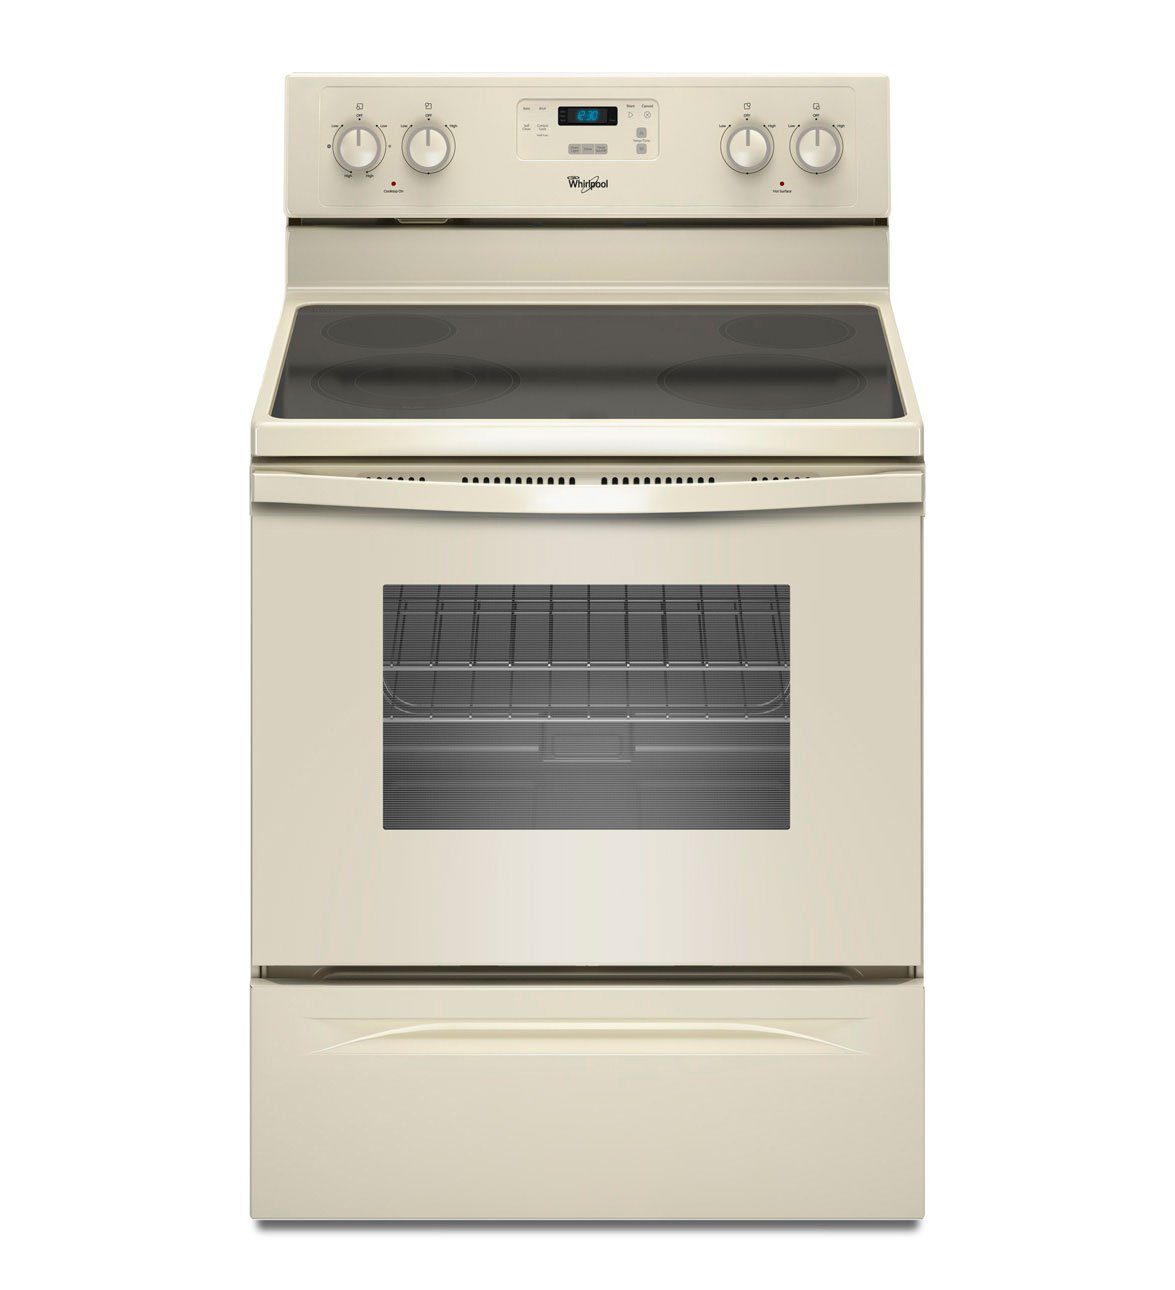 Amazon.com: Whirlpool wfe510s0ab 30